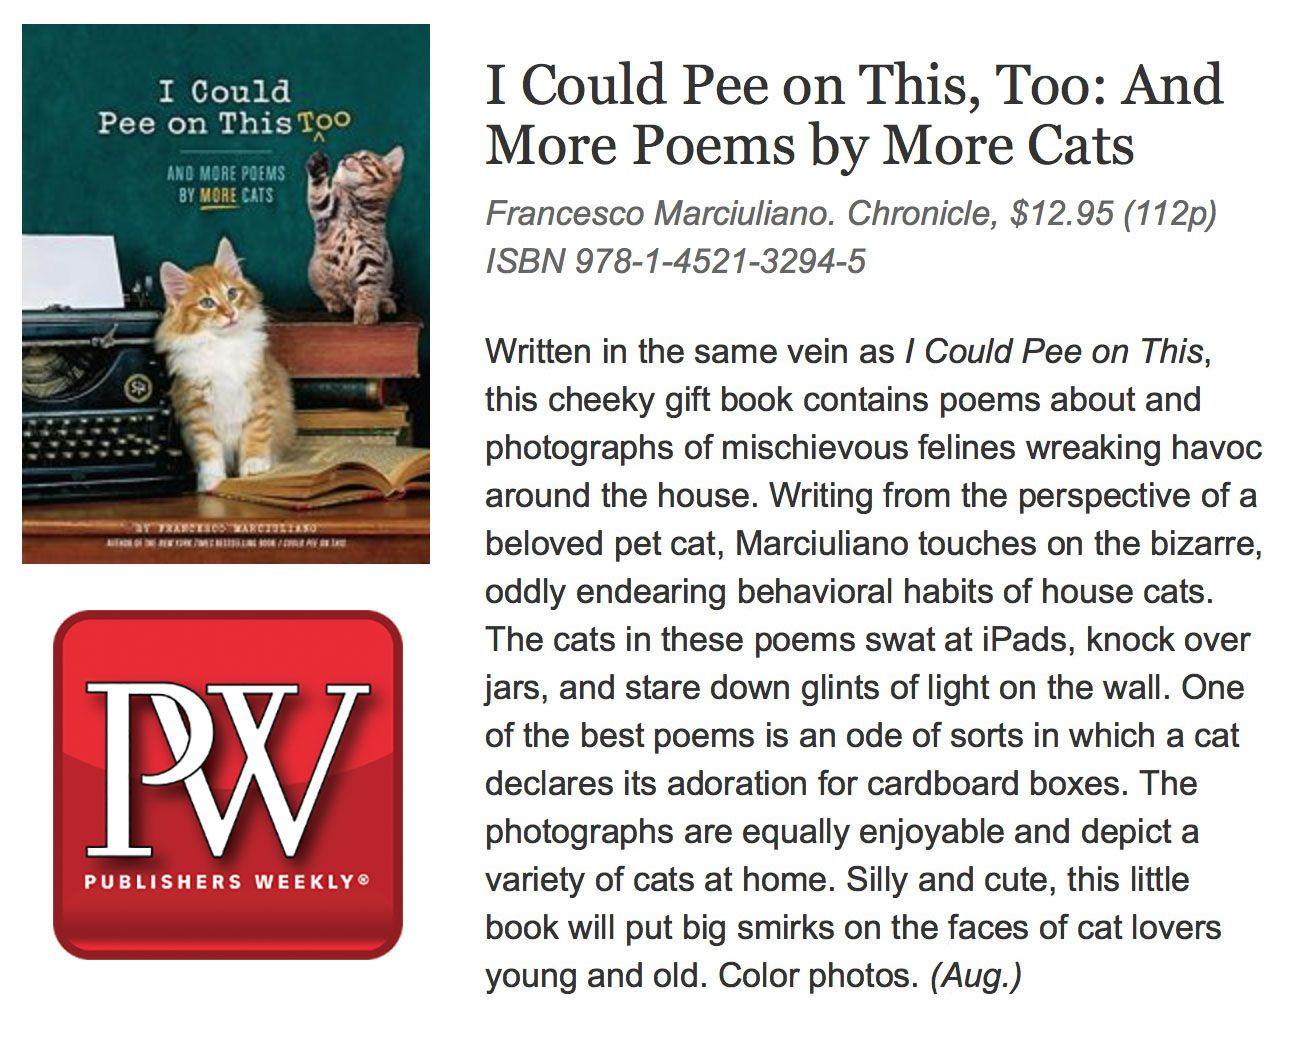 I Could Pee on This, Too: Publishers Weekly Review